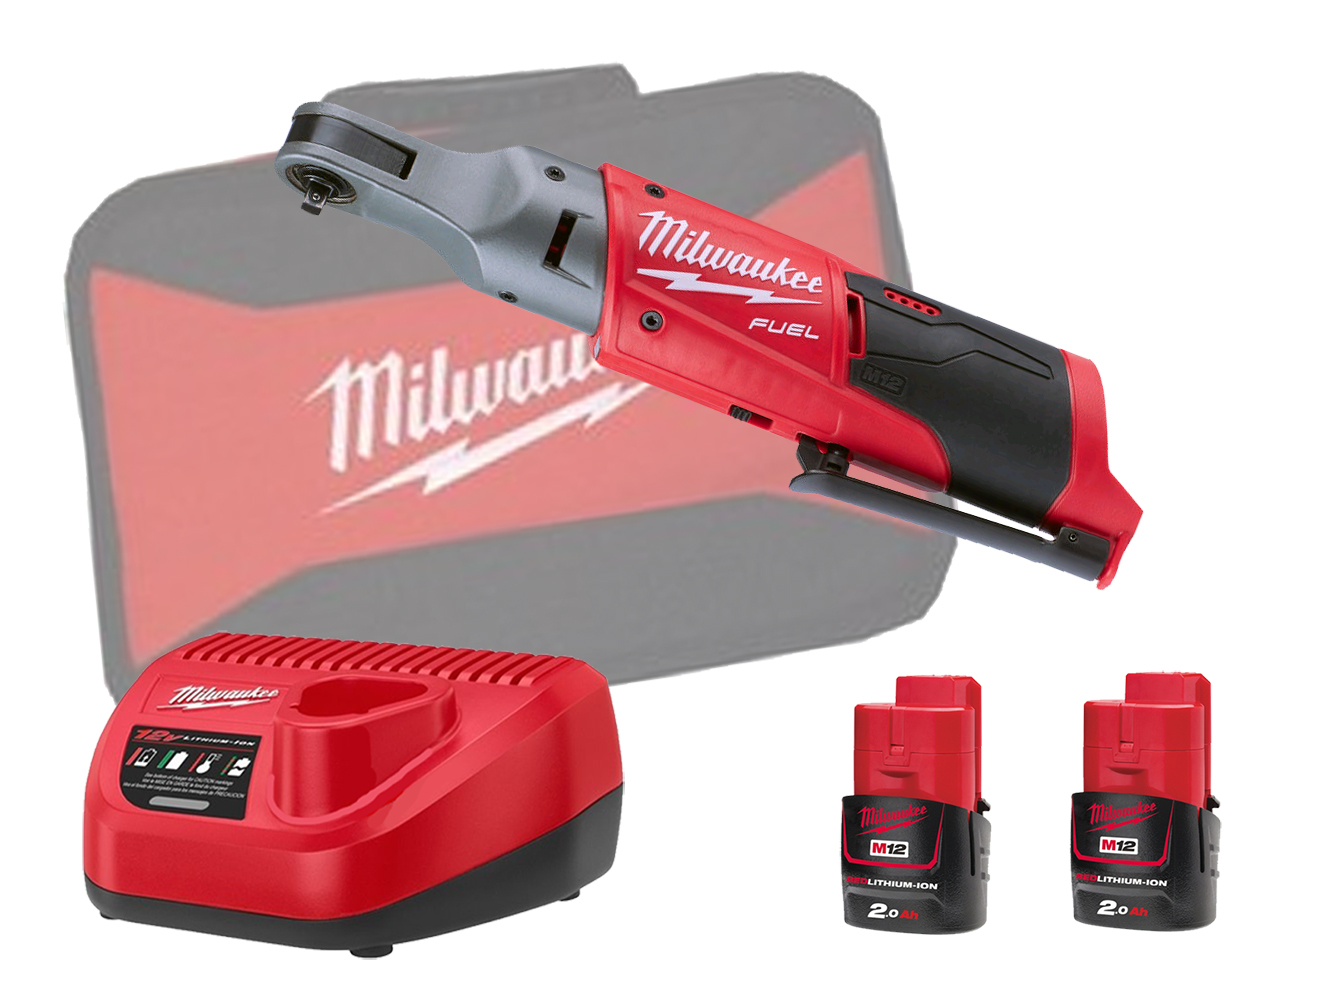 Milwaukee M12FIR14 12V Fuel Brushless 1/4In Impact Ratchet - 2.0Ah Pack